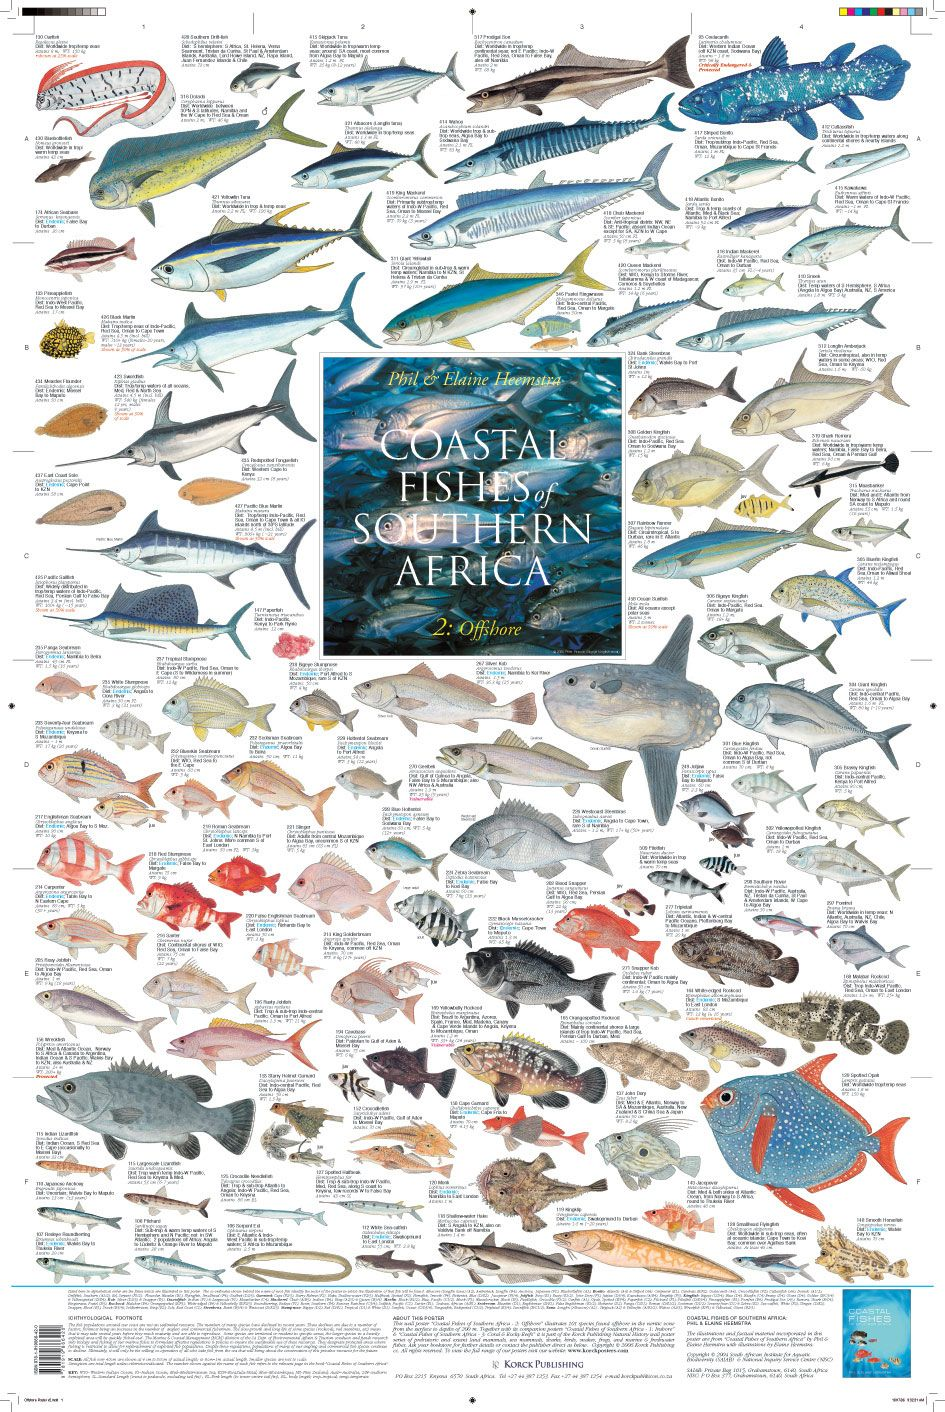 Coastal Fishes Of Southern Africa 2 Offshore Marine Fish Water Animals Sea Fish